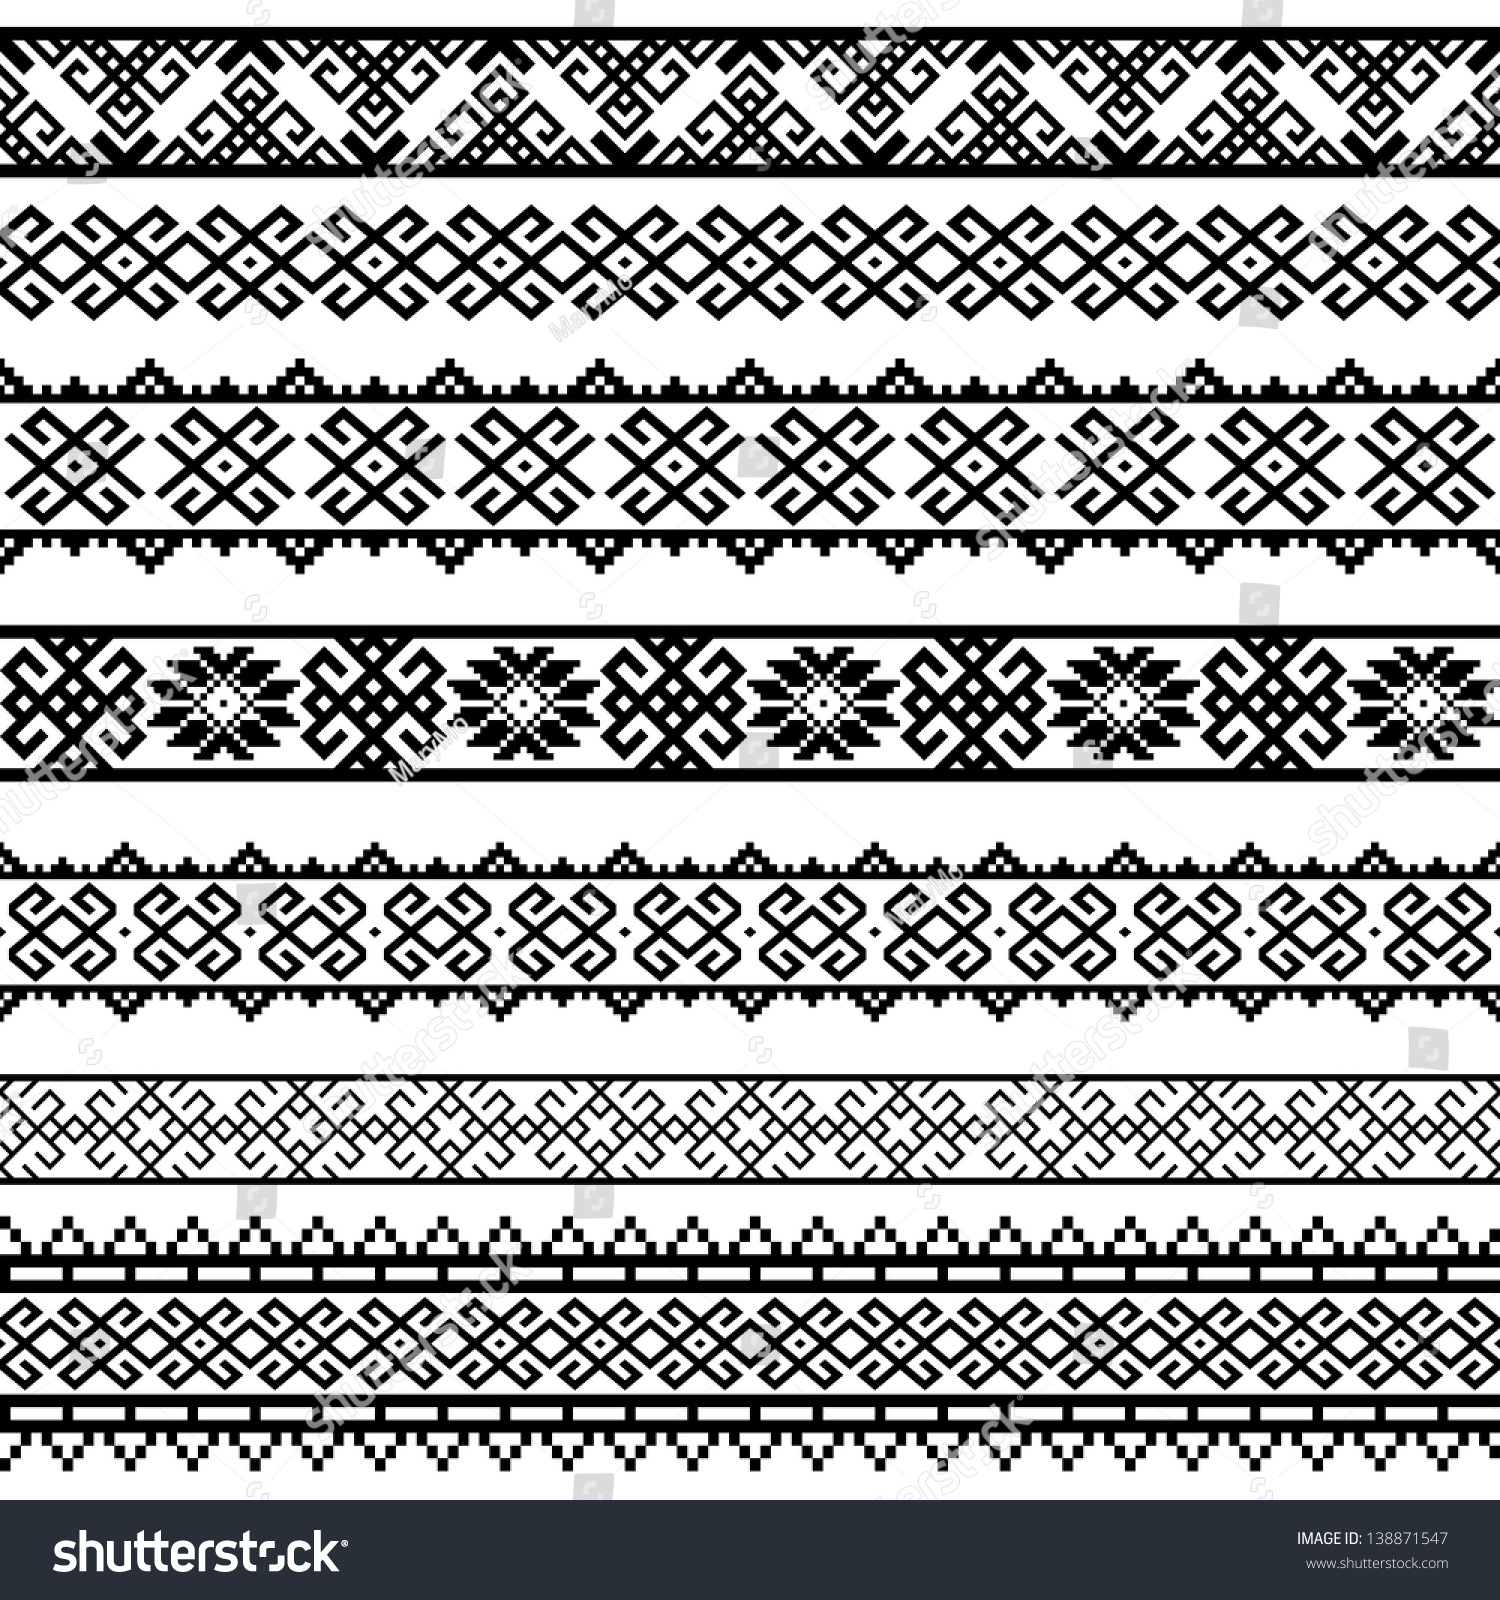 Border Decoration Elements Patterns Black White Stock ...